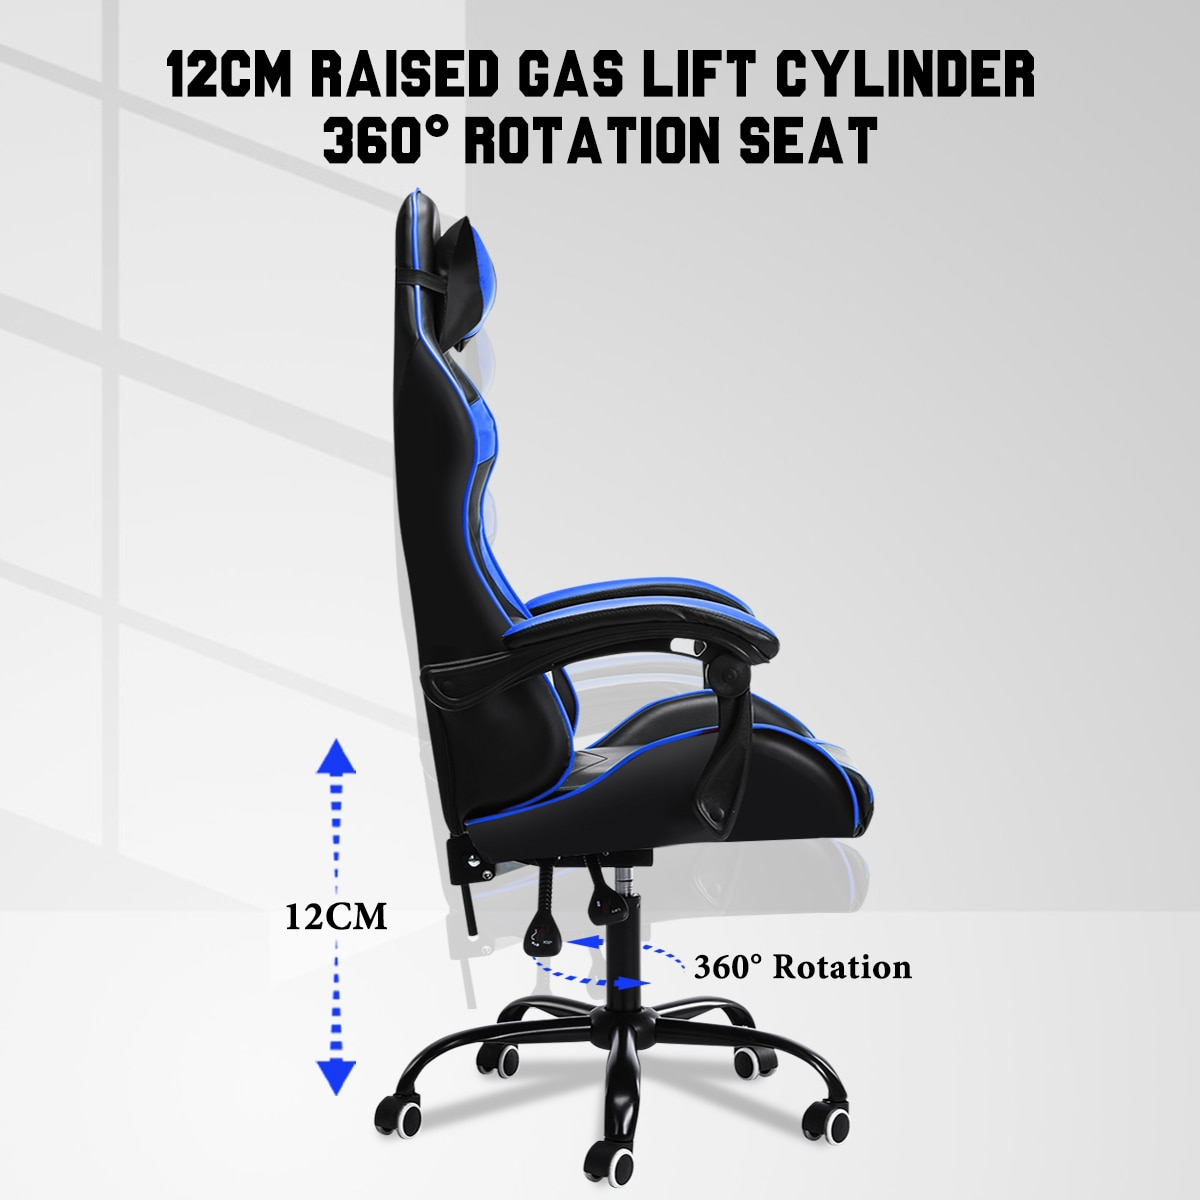 Hb45a9e2ed1b54b578b4f619d2d4130d2D - Office Gaming Chair with Footrest Ergonomic Office Chairs Adjustable Swivel Leather High Back Computer Desk Chair with Headrest